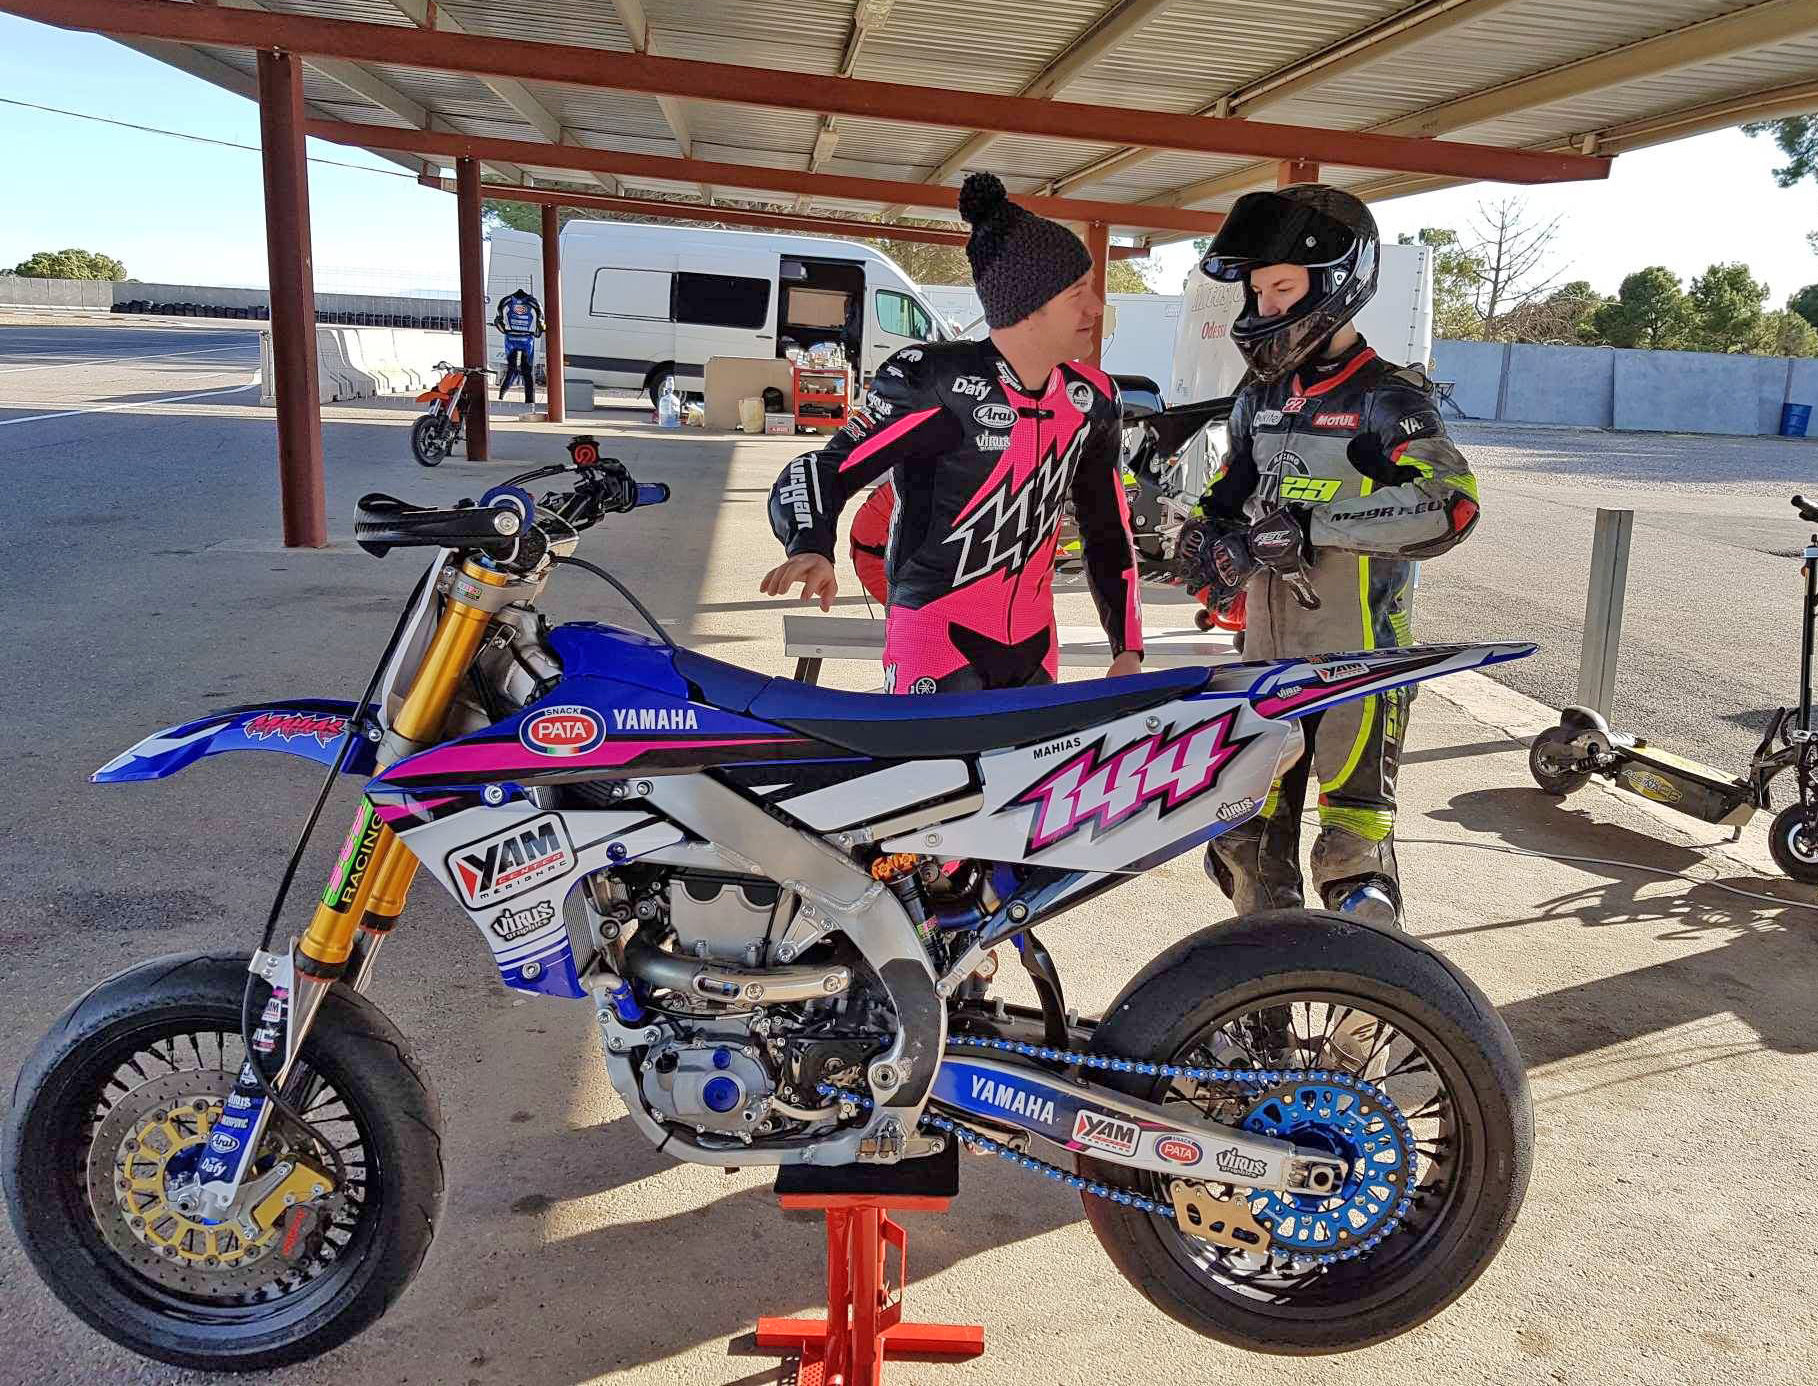 PRE-SEASON TRAINING IN SPAIN FOR THE 2018 WORLD SUPERSPORT 300 CHAMPIONSHIP